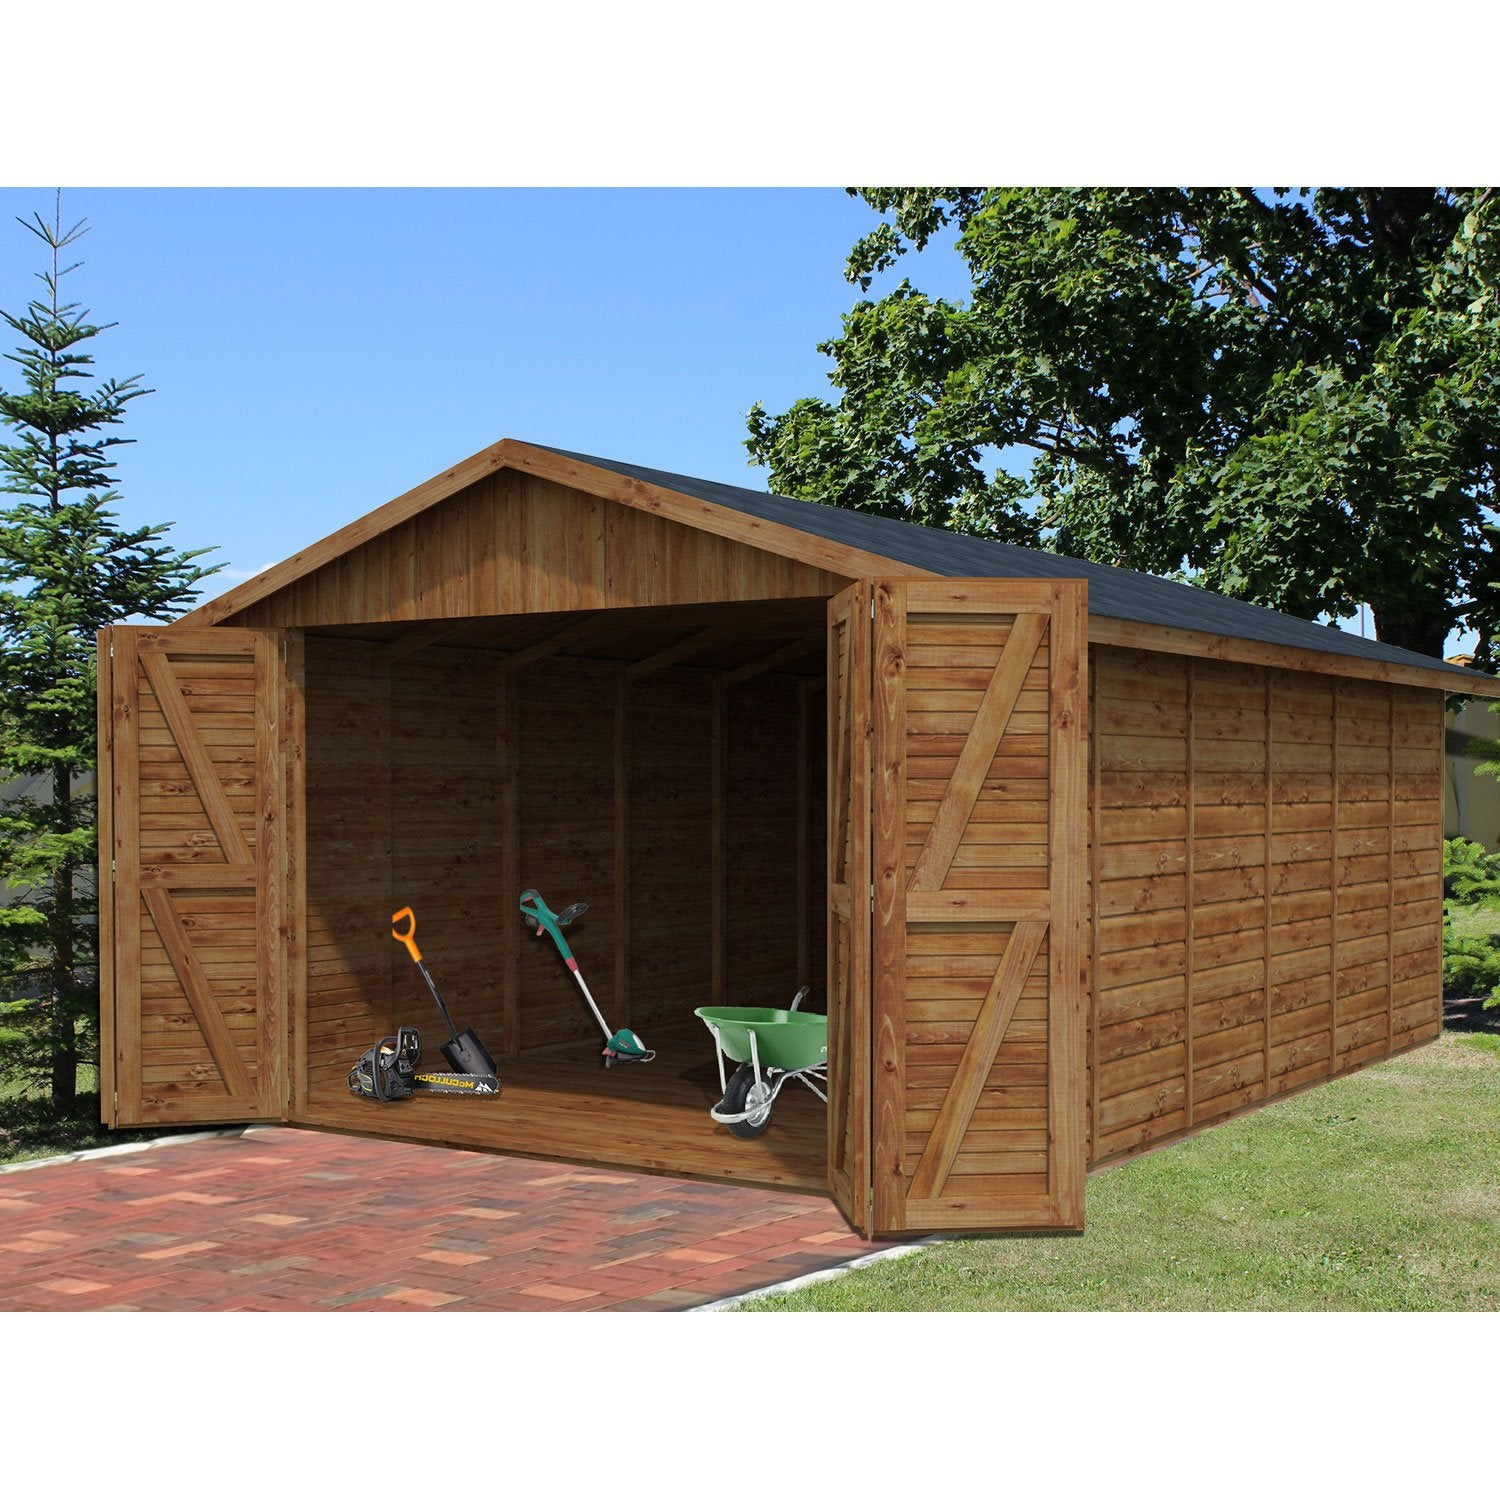 Garage bois tourmalet 2 voitures m leroy merlin for Garage en bois 20m2